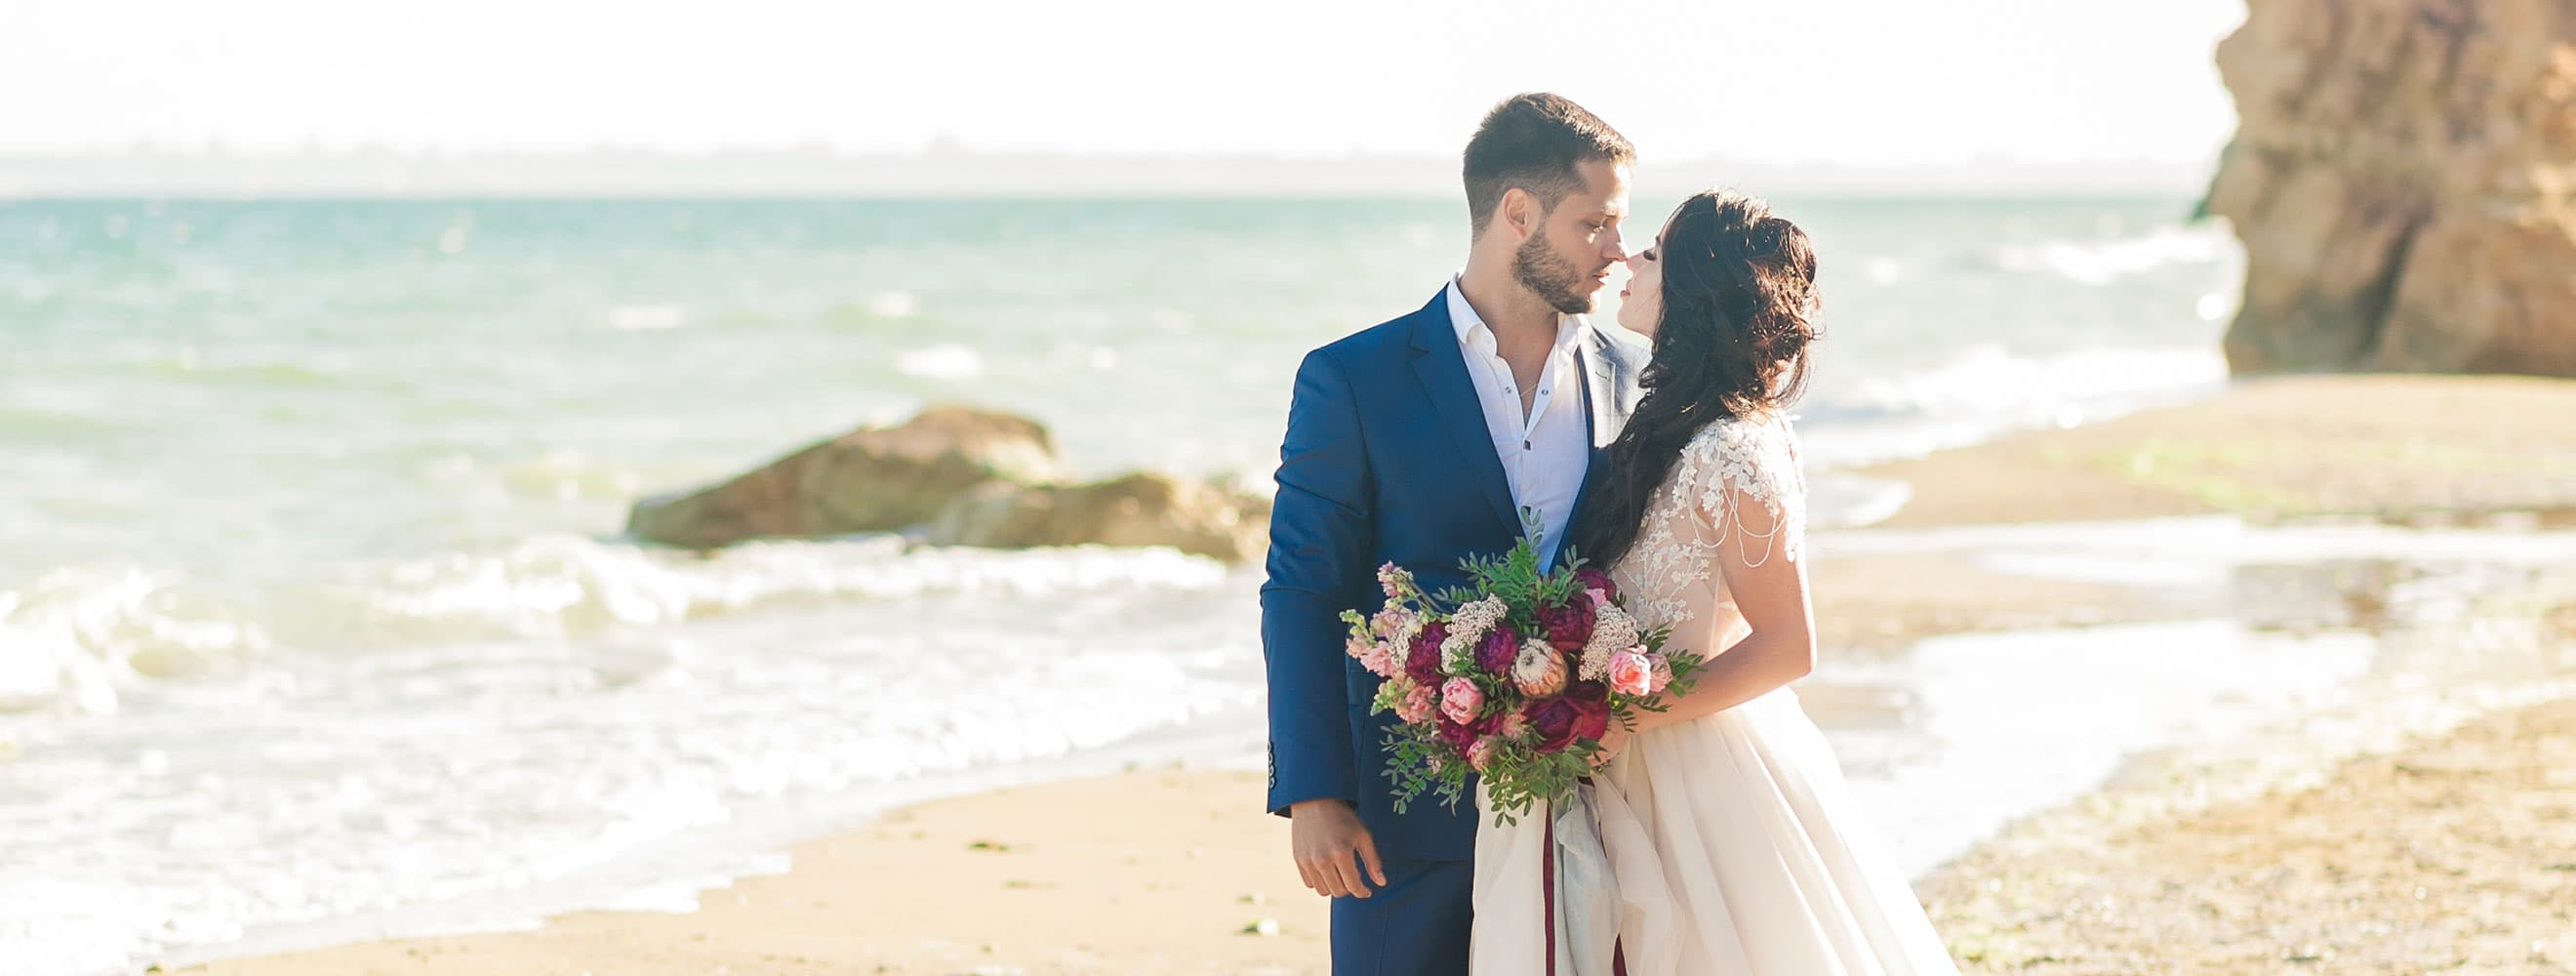 Bride and Groom look intensely into each others' eyes on the beach